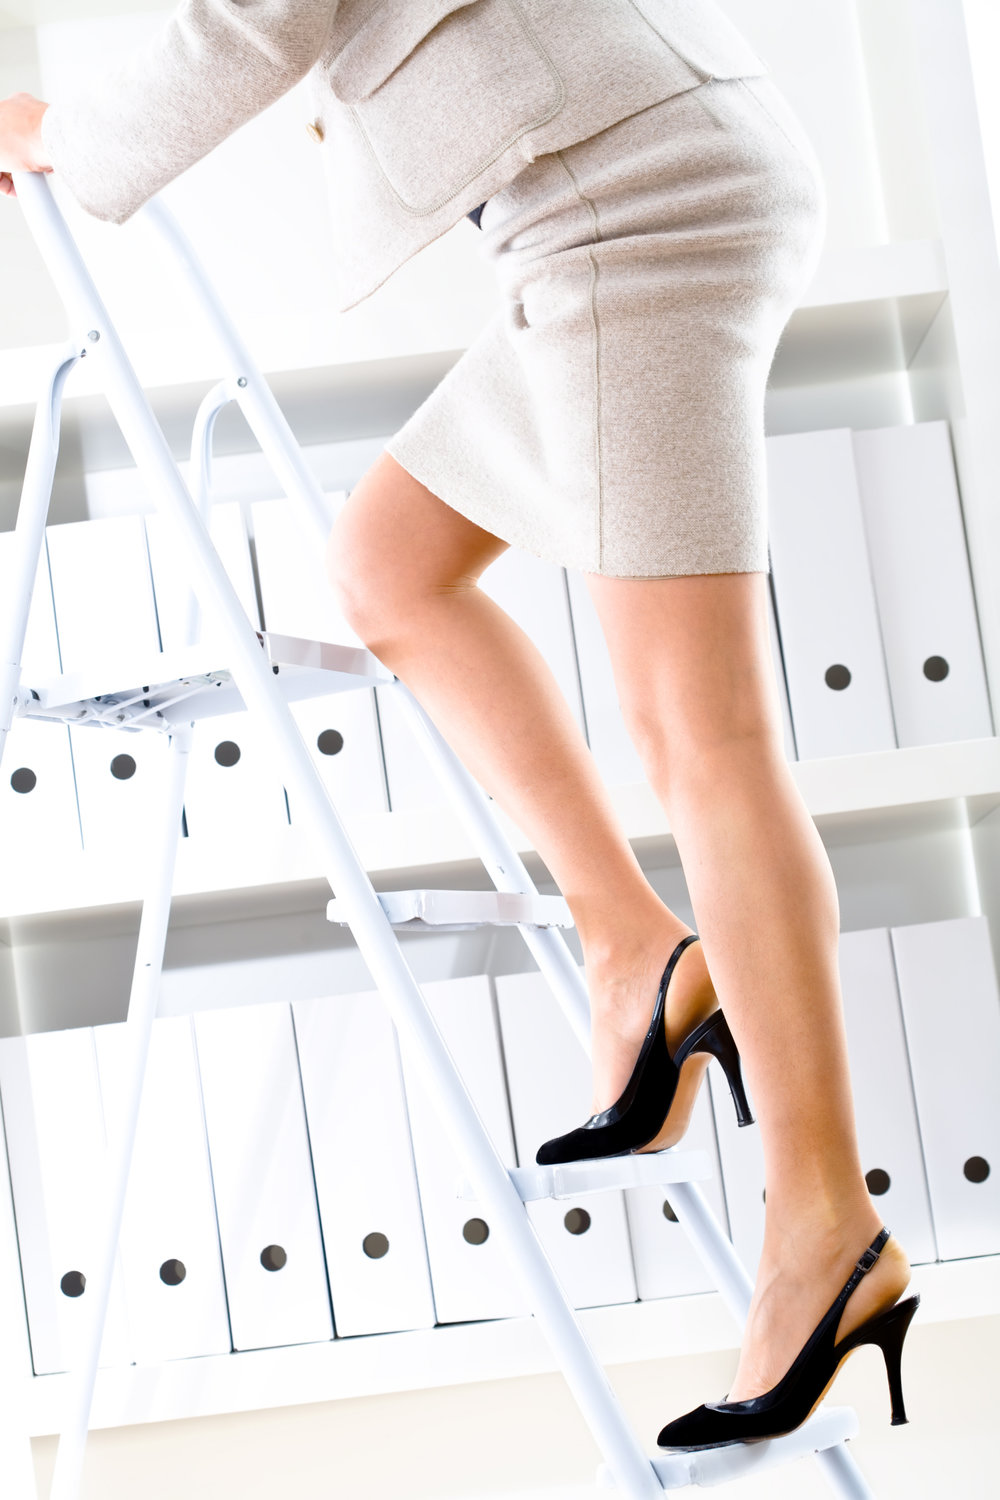 144955682SexyLegsonLadder-Thinkstockphotos.com NEW!.jpg